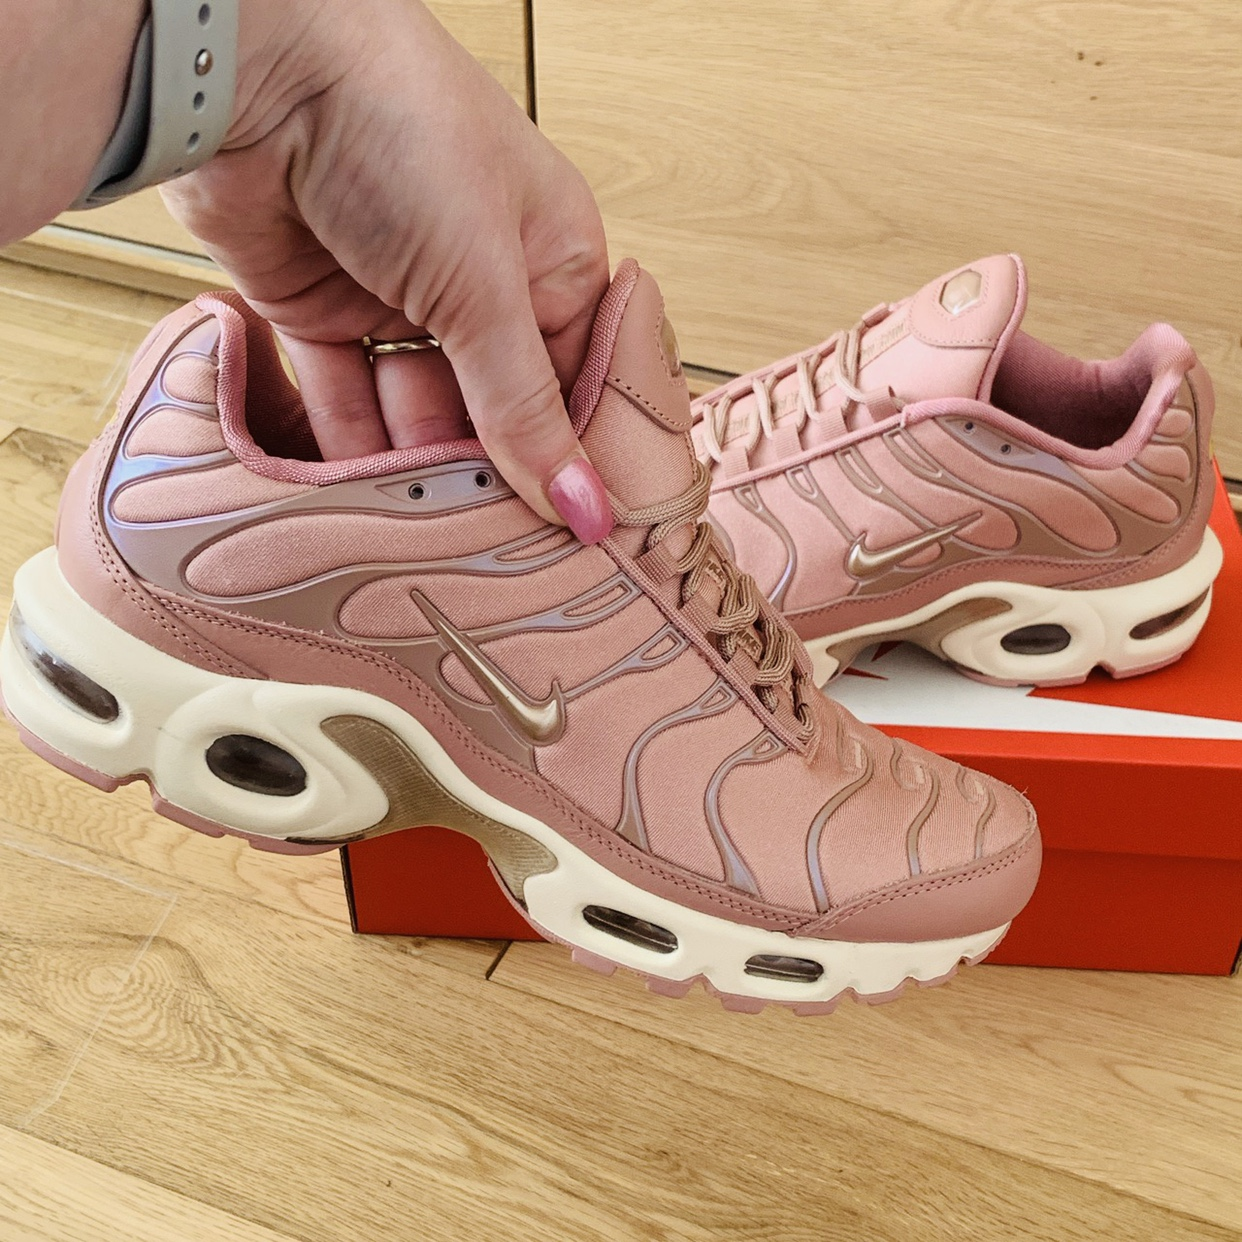 Nike women's Air Max plus trainers AT5695 600 Colour Depop